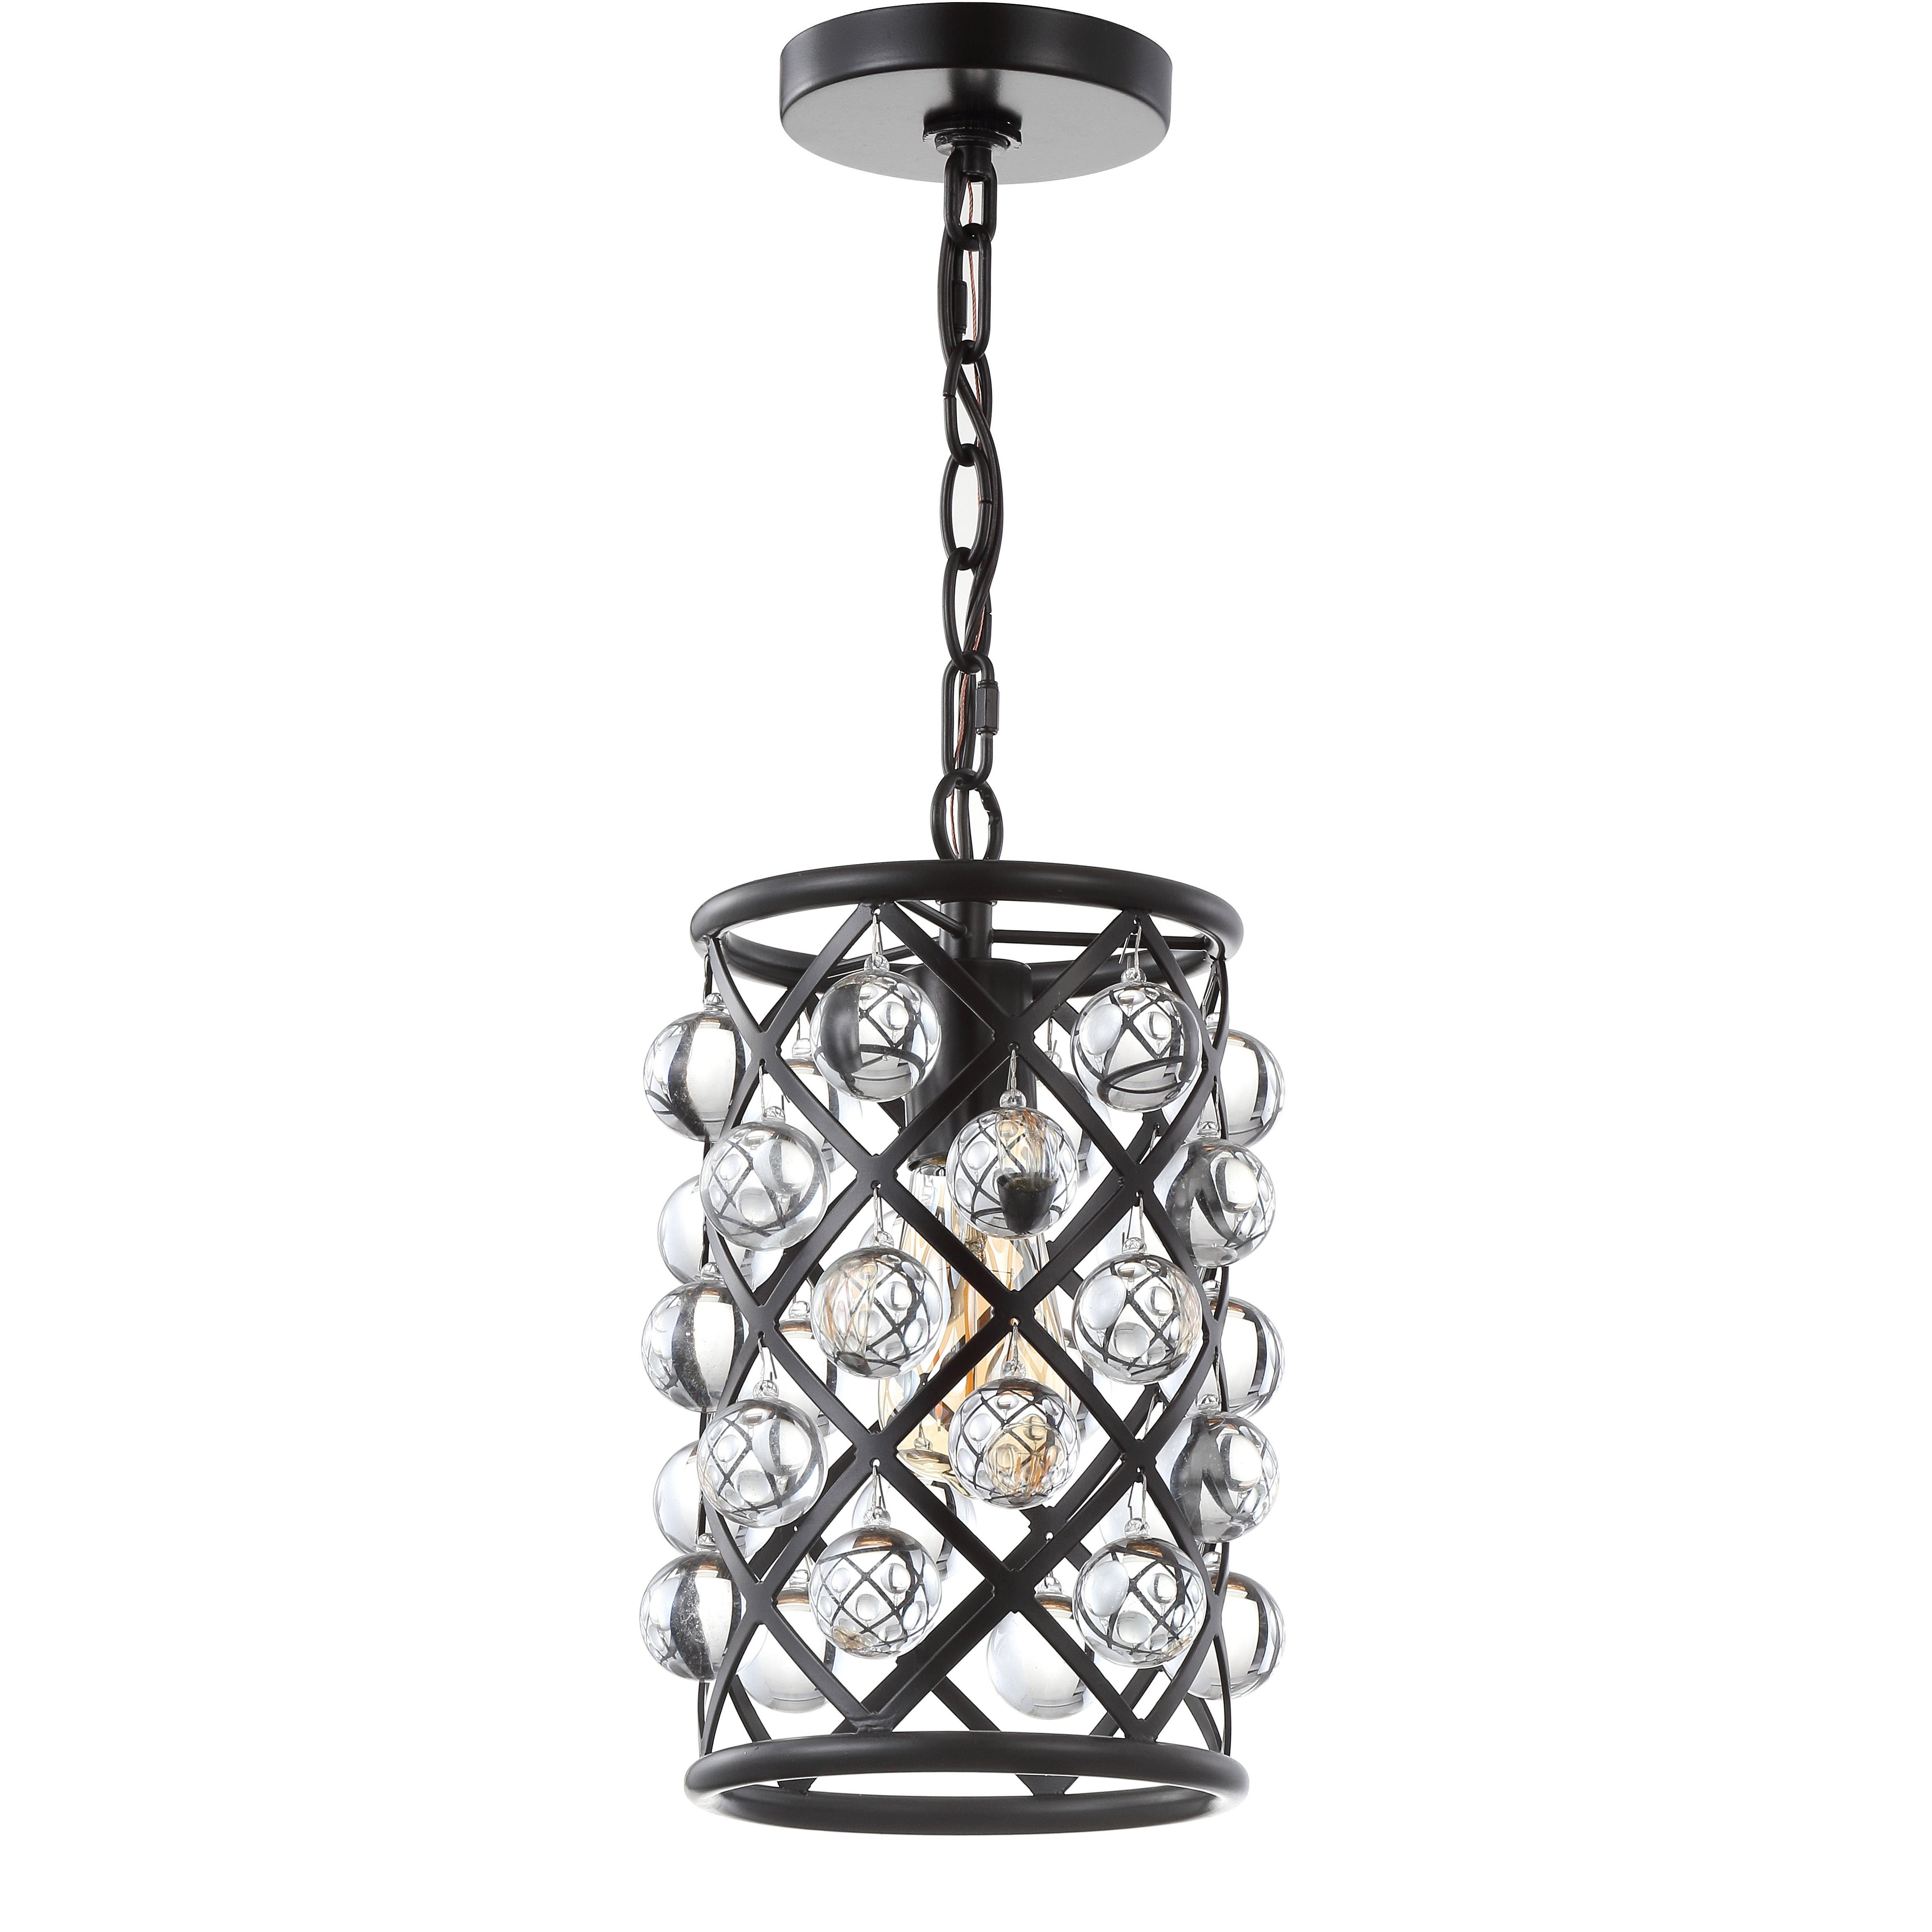 Chesler 1 Light Cylinder Pendant Throughout Well Liked Hurst 1 Light Single Cylinder Pendants (View 14 of 20)